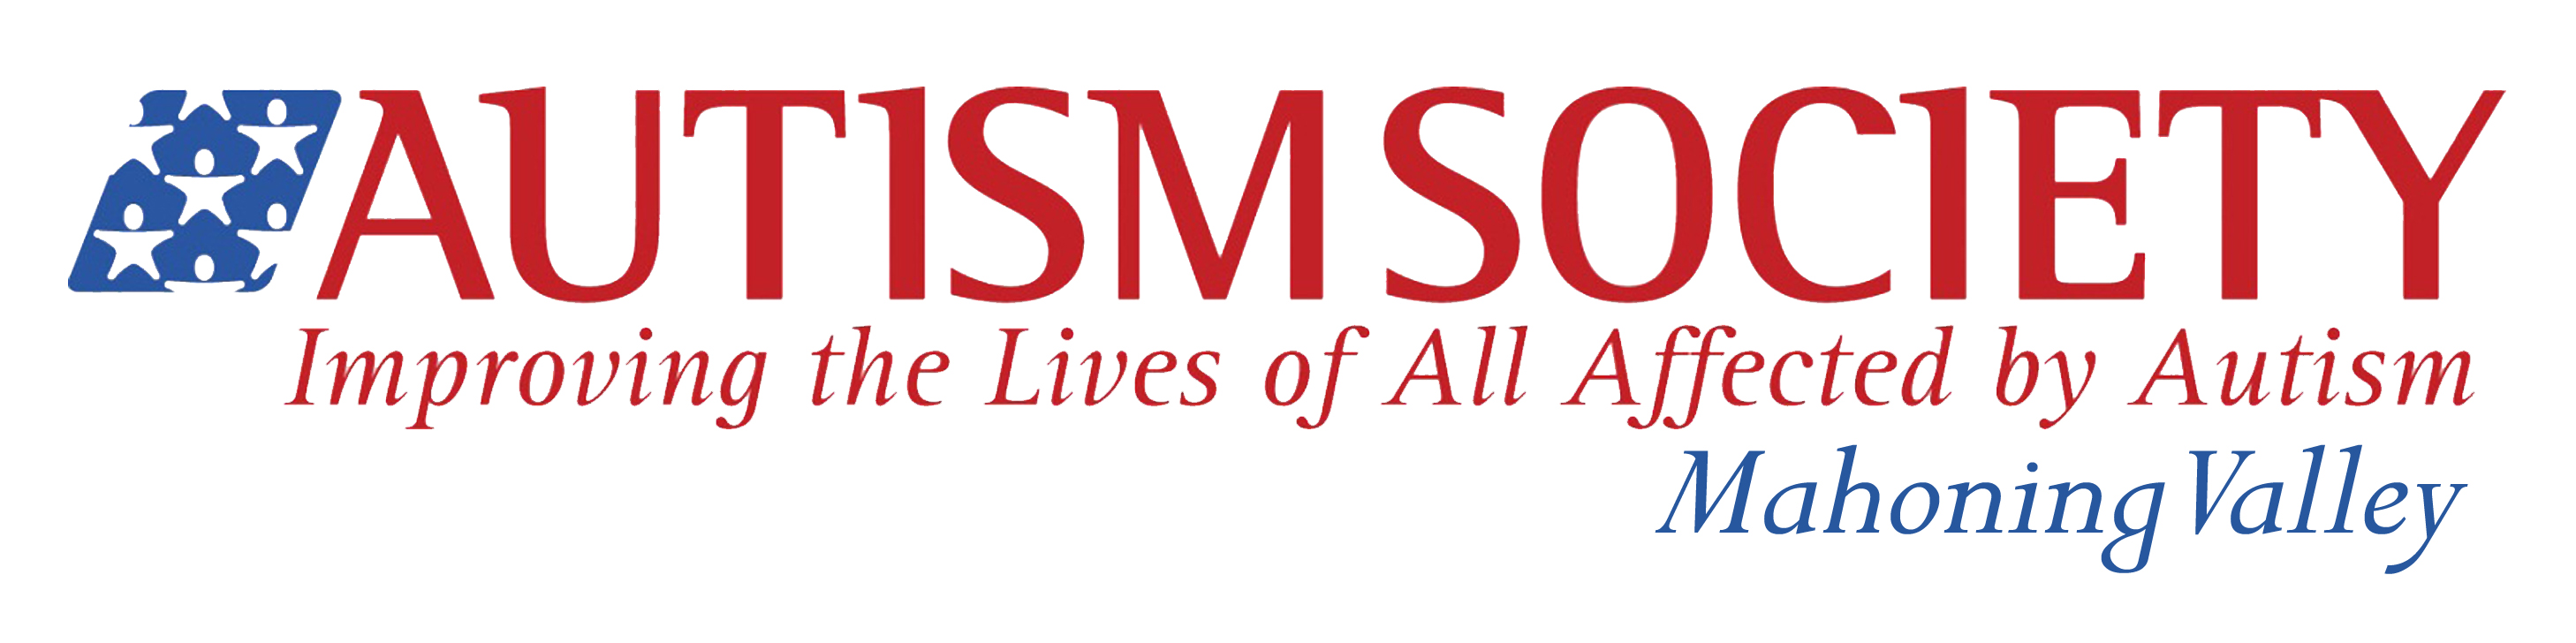 Autism Society of Mahoning Valley logo